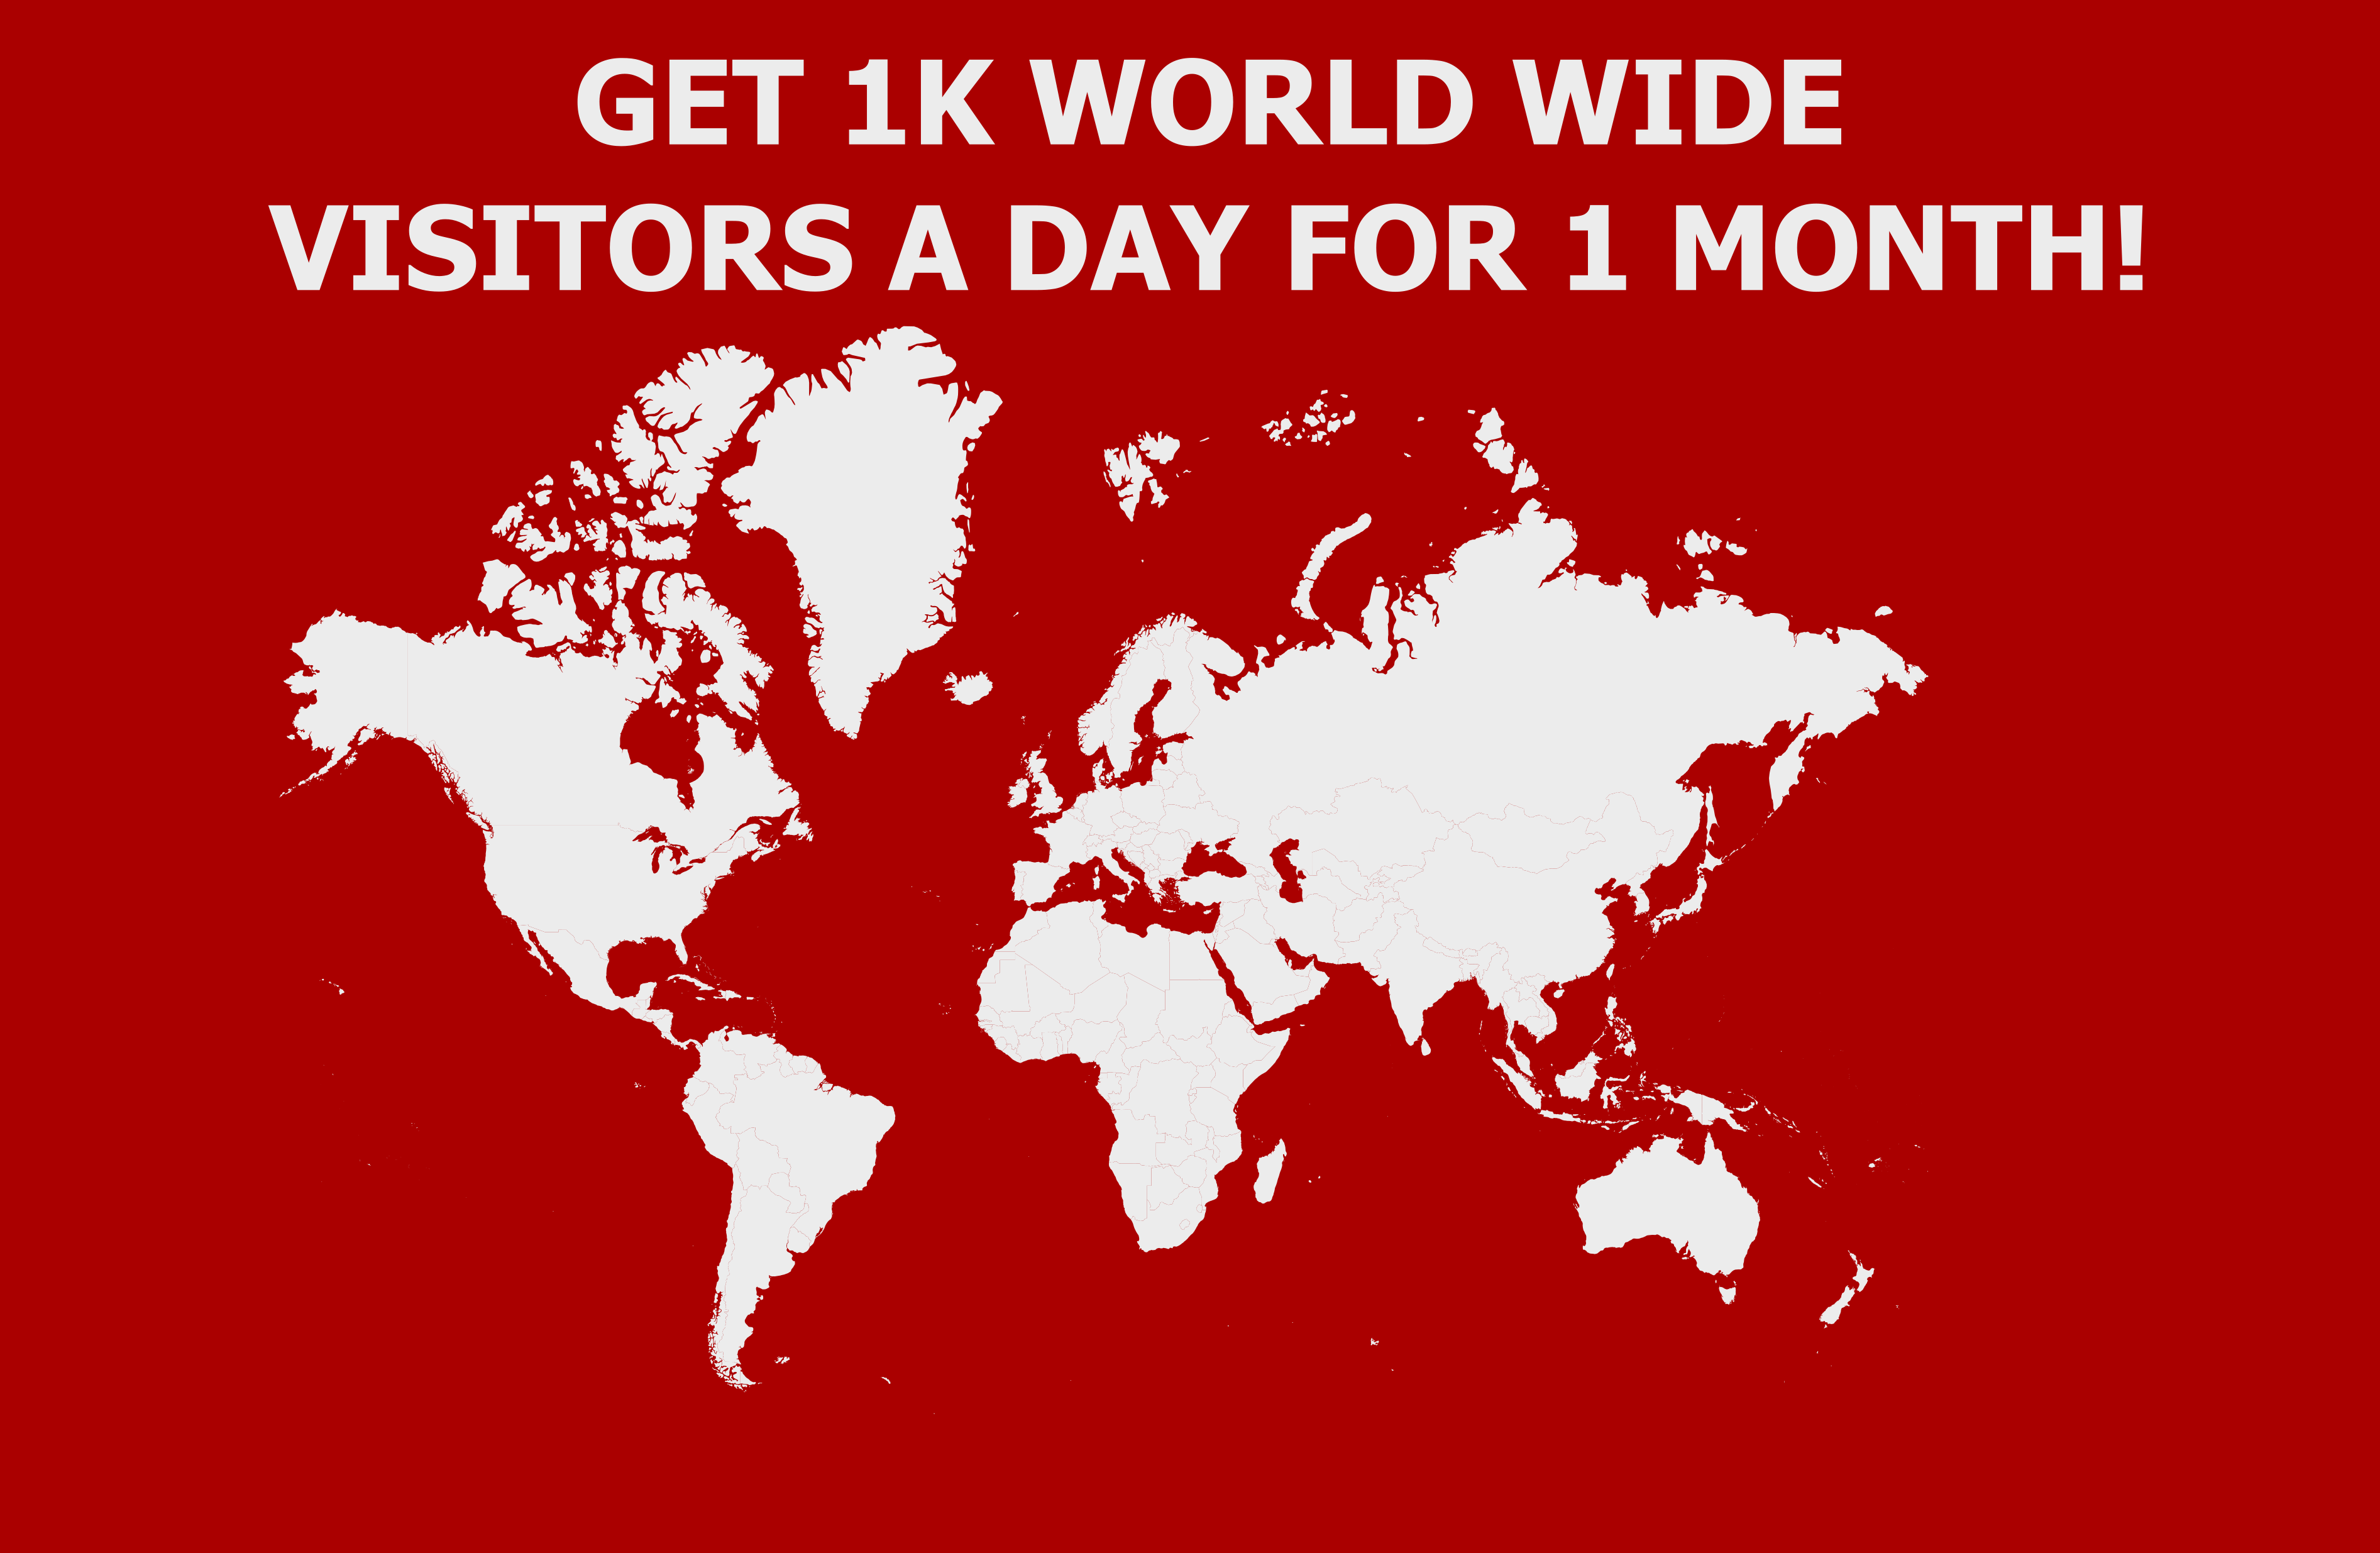 Send 1,000 Visitors A Day for 1 Month